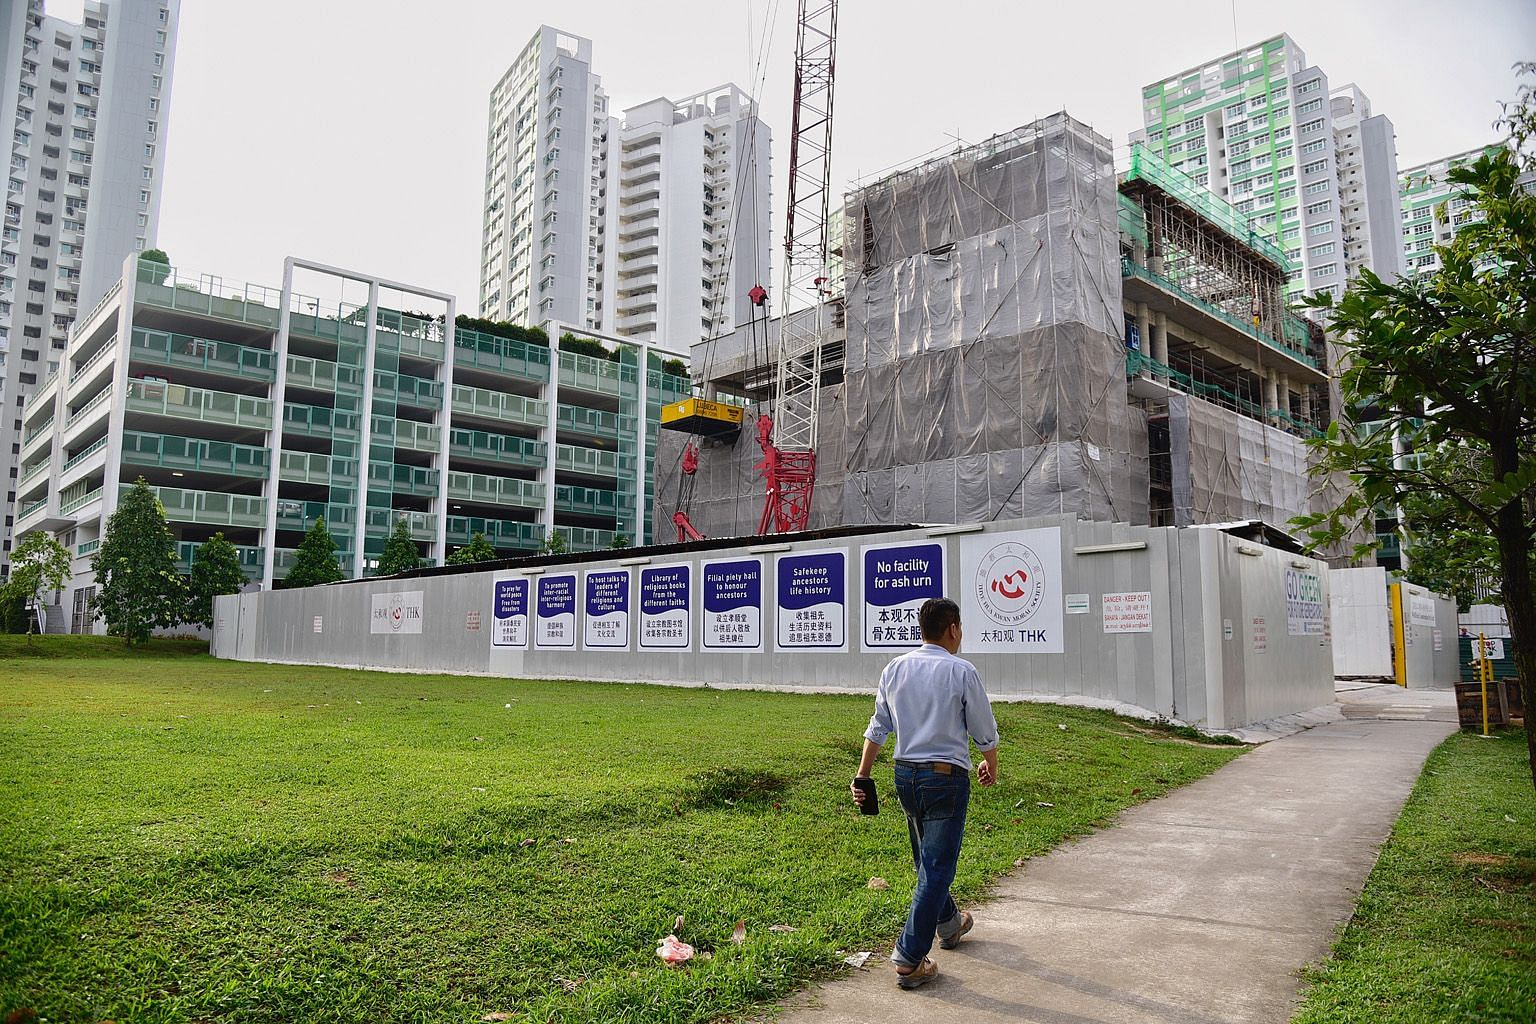 The issue of businesses placing bids for religious land surfaced in 2014, when commercial entity Eternal Pure Land won the bid for a Fernvale Link plot. In January 2015, the authorities said they would review and tighten the land tender process for p